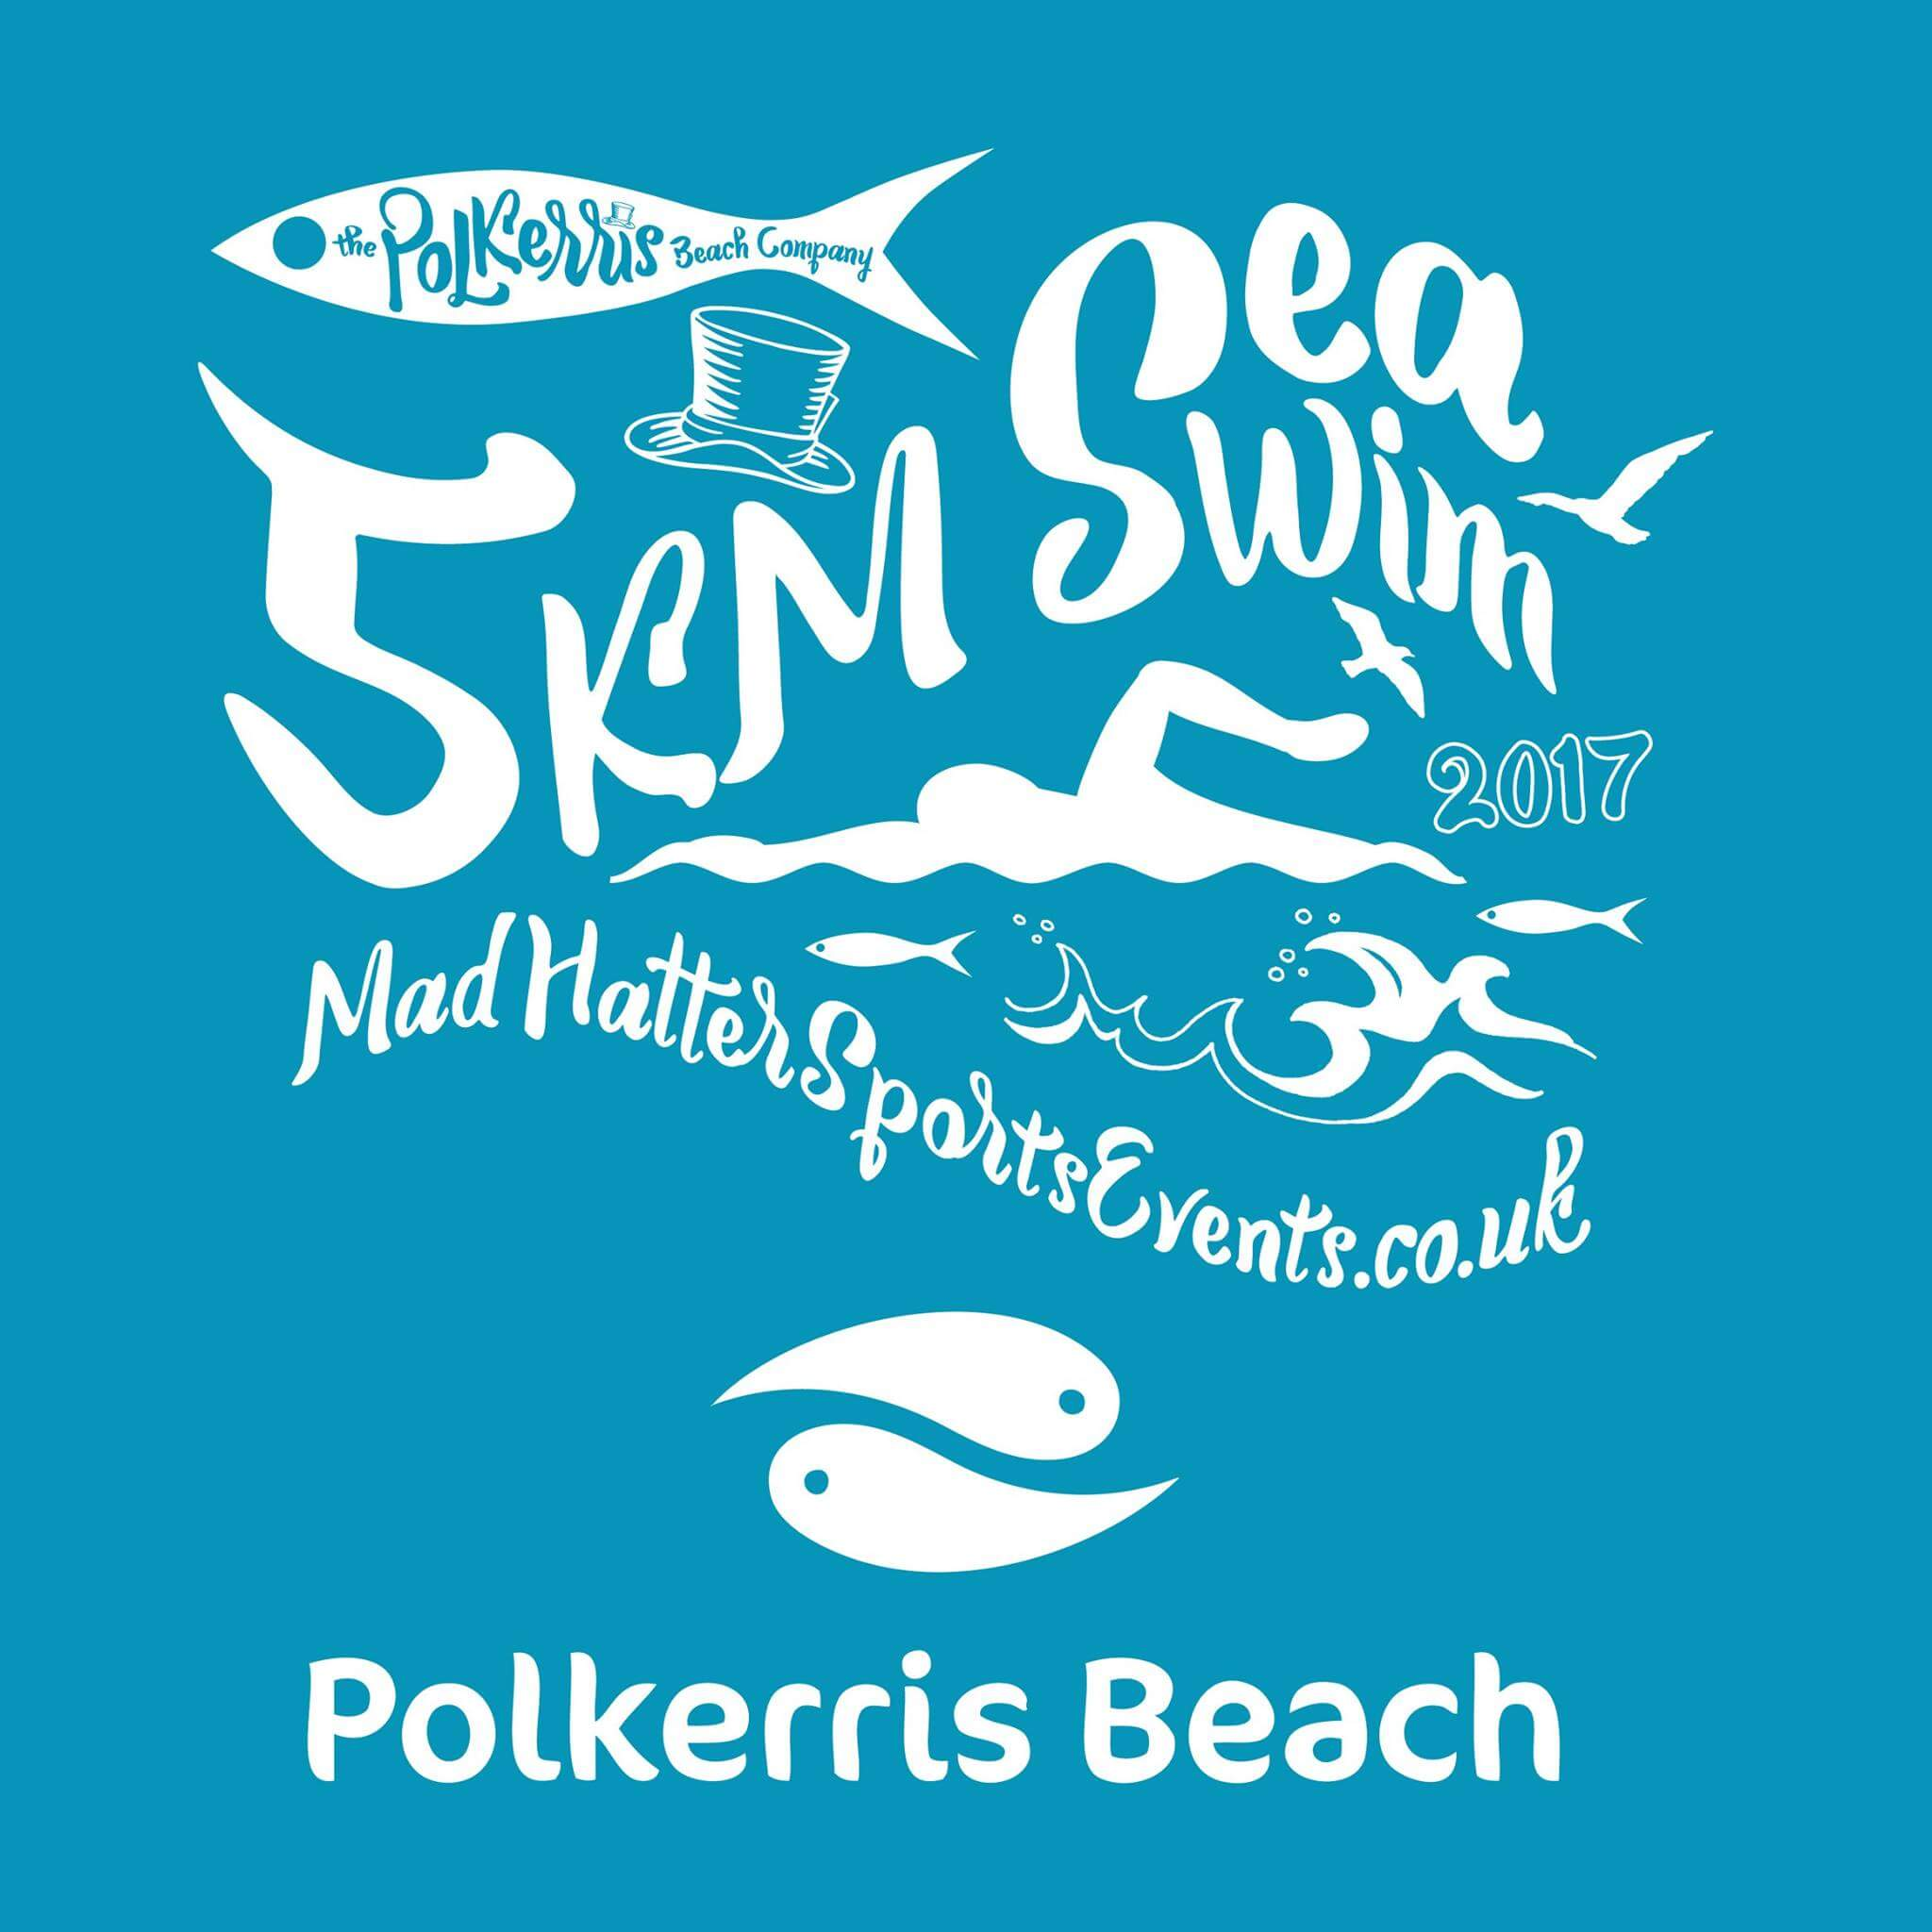 5km swim cornwall